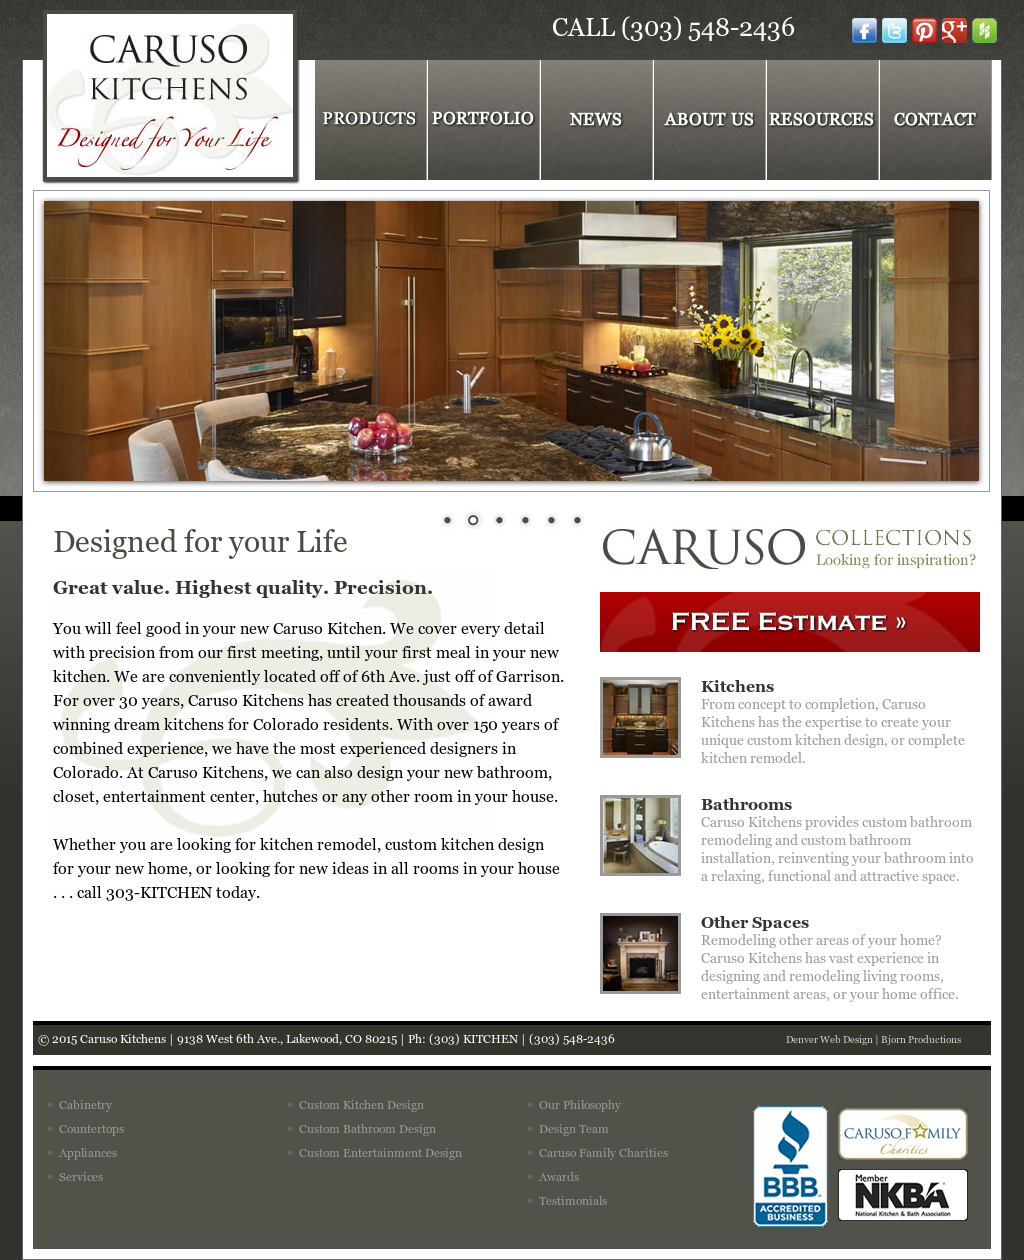 Caruso Kitchens Competitors, Revenue and Employees - Owler Company ...